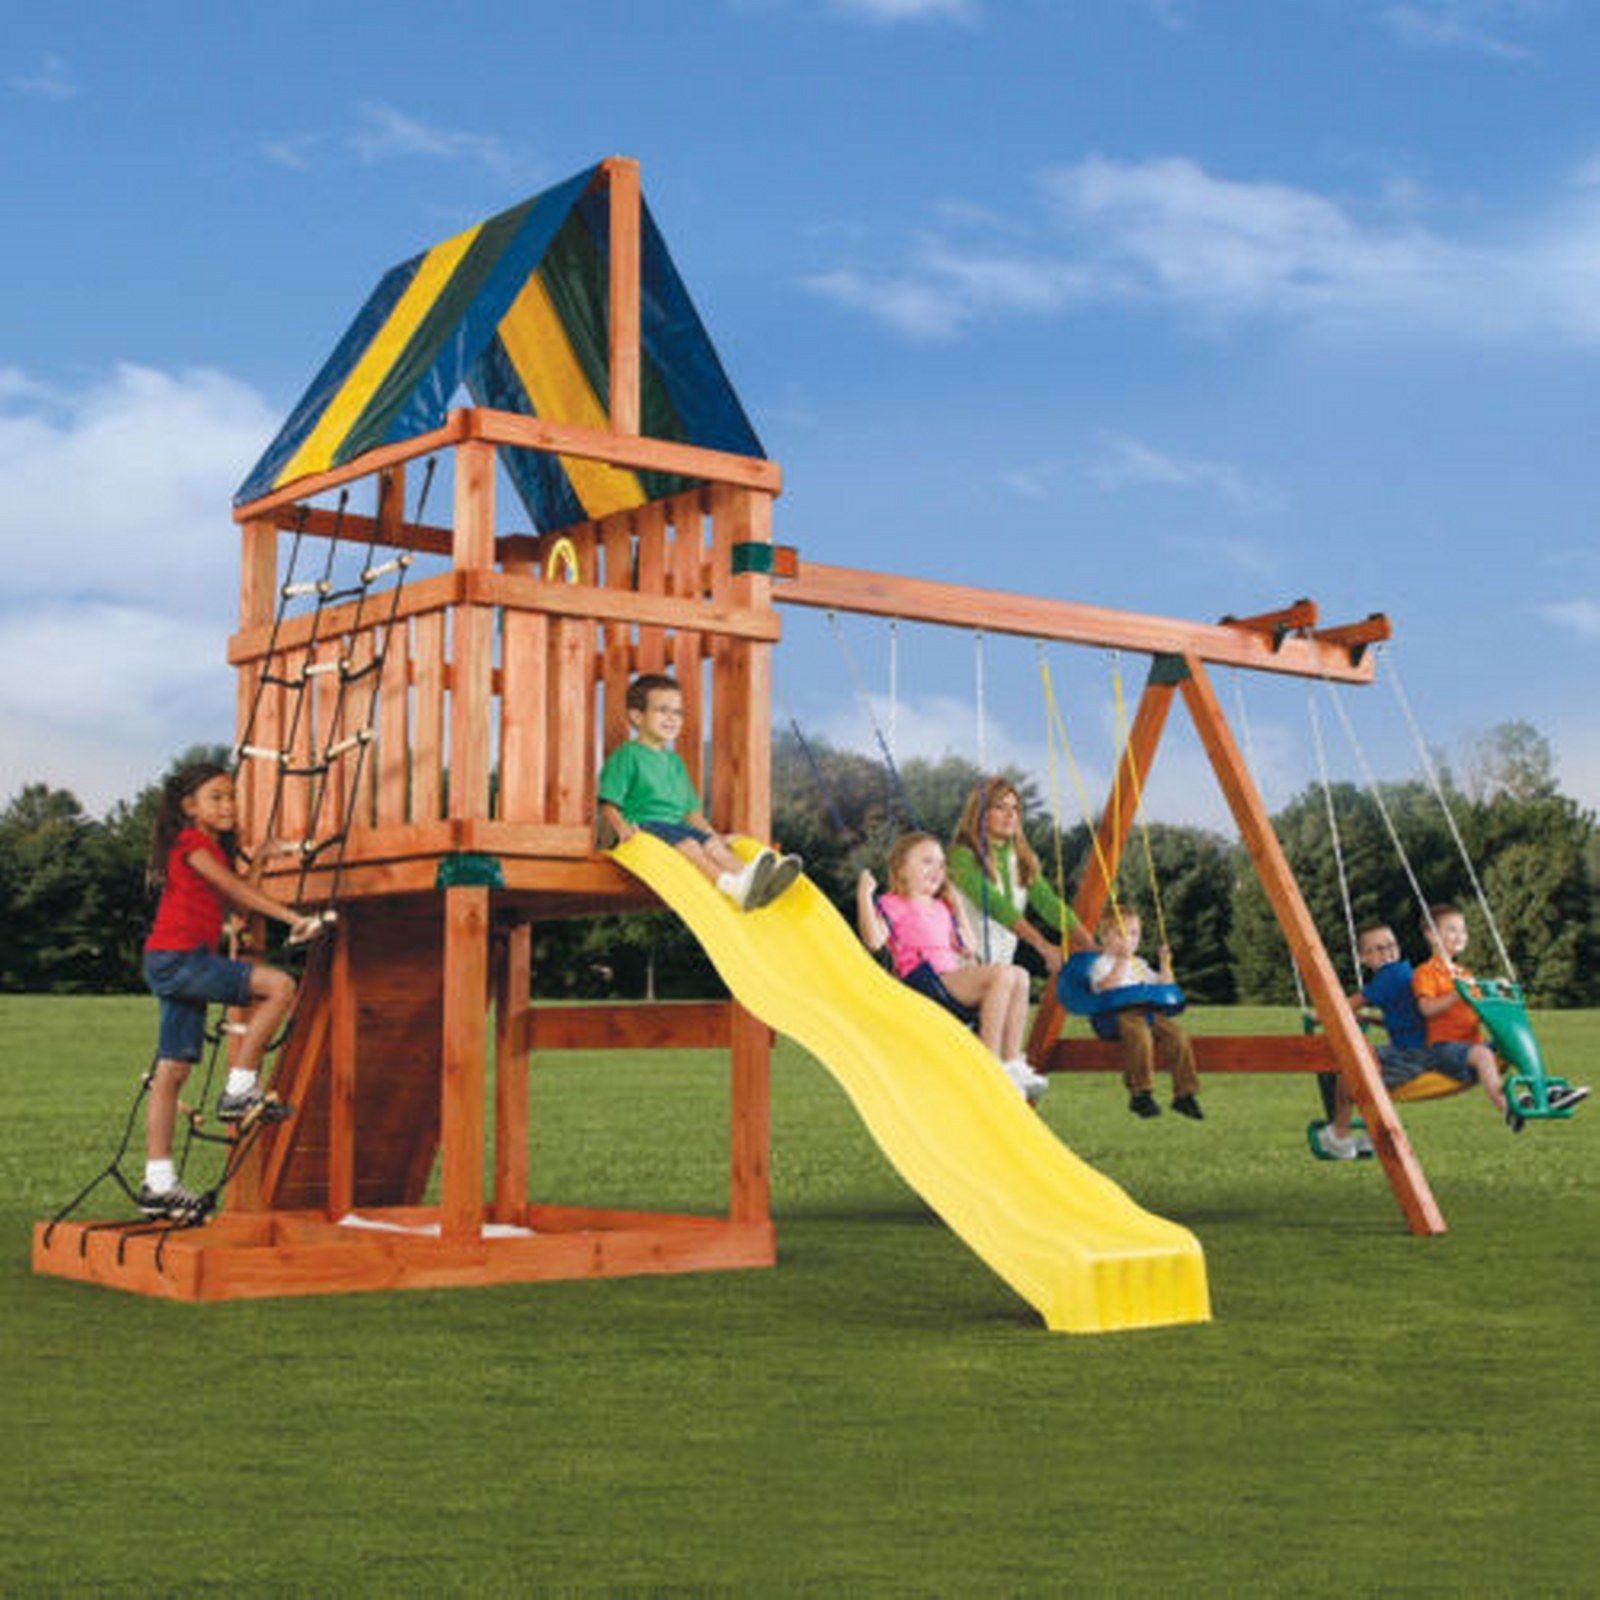 Alpine Custom Play Swing Set Hardware Kit Outdoor Kids Backyard Playset W/o  Wood